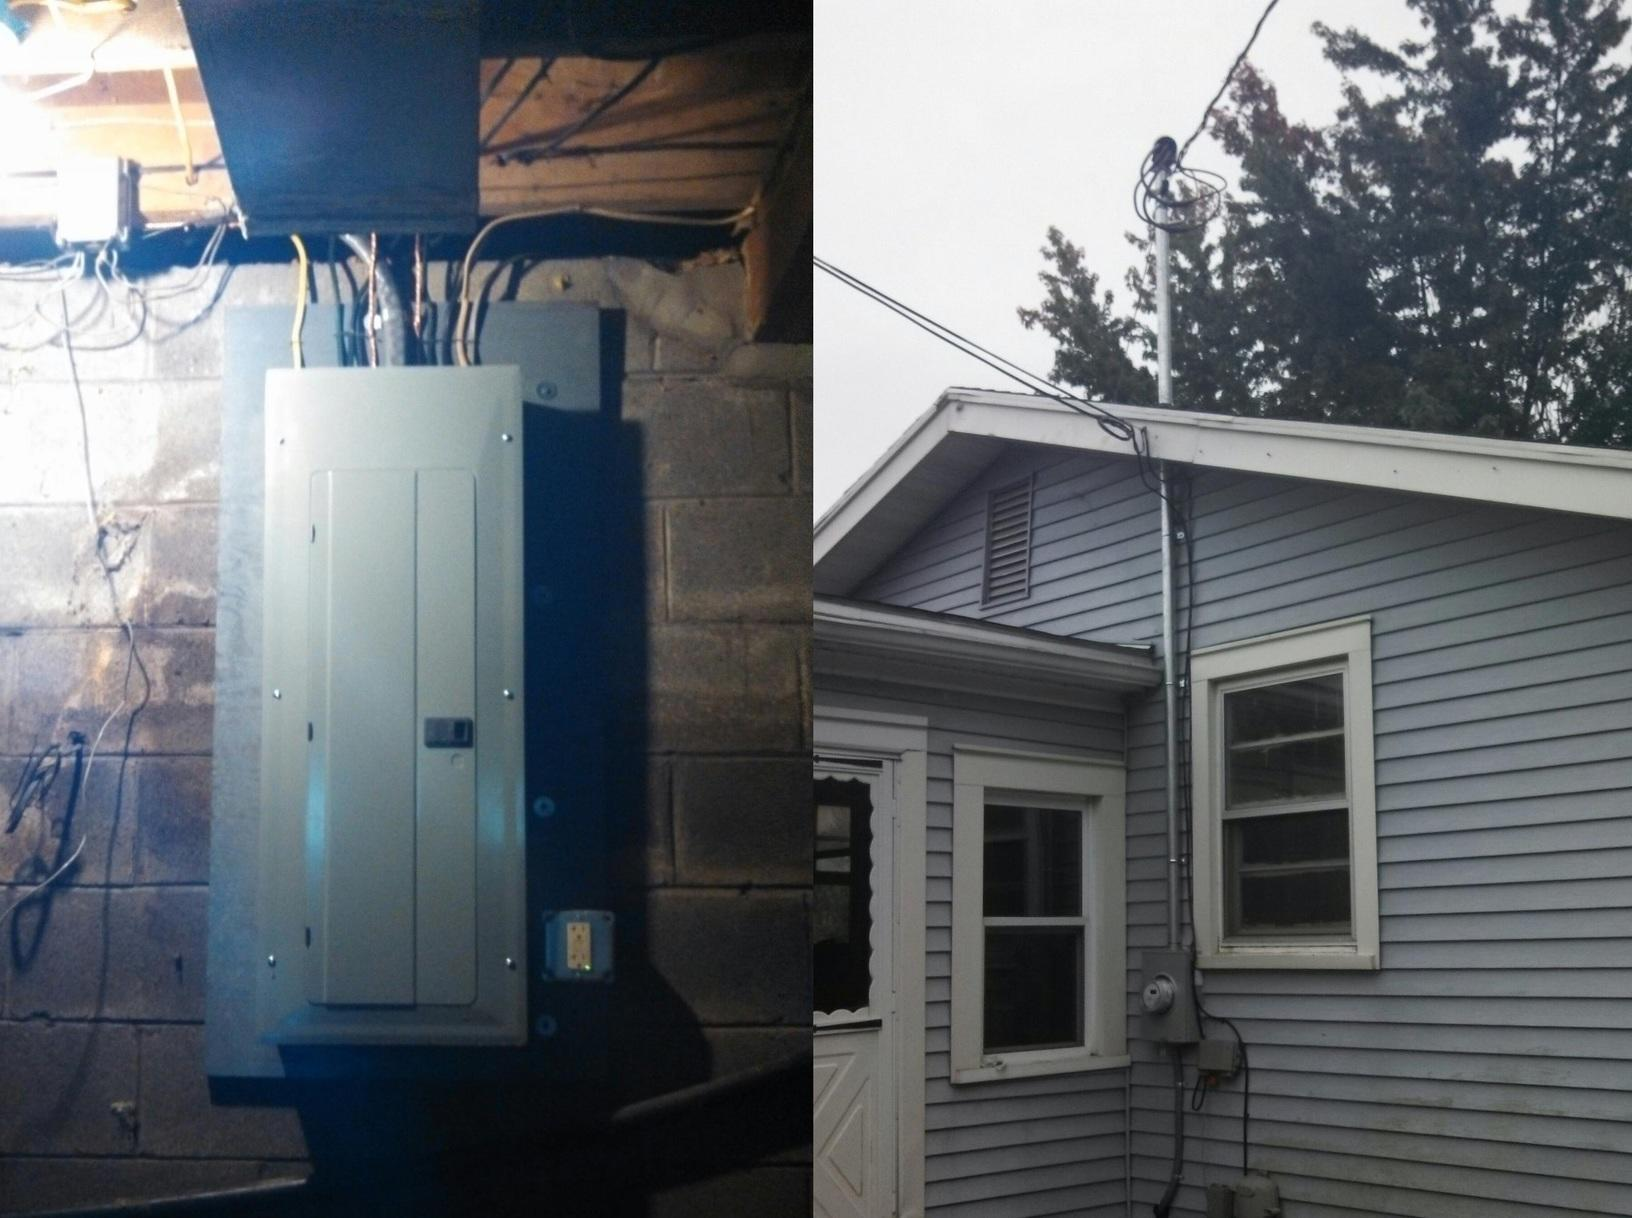 New Electrical Service in Sodus, NY - After Photo